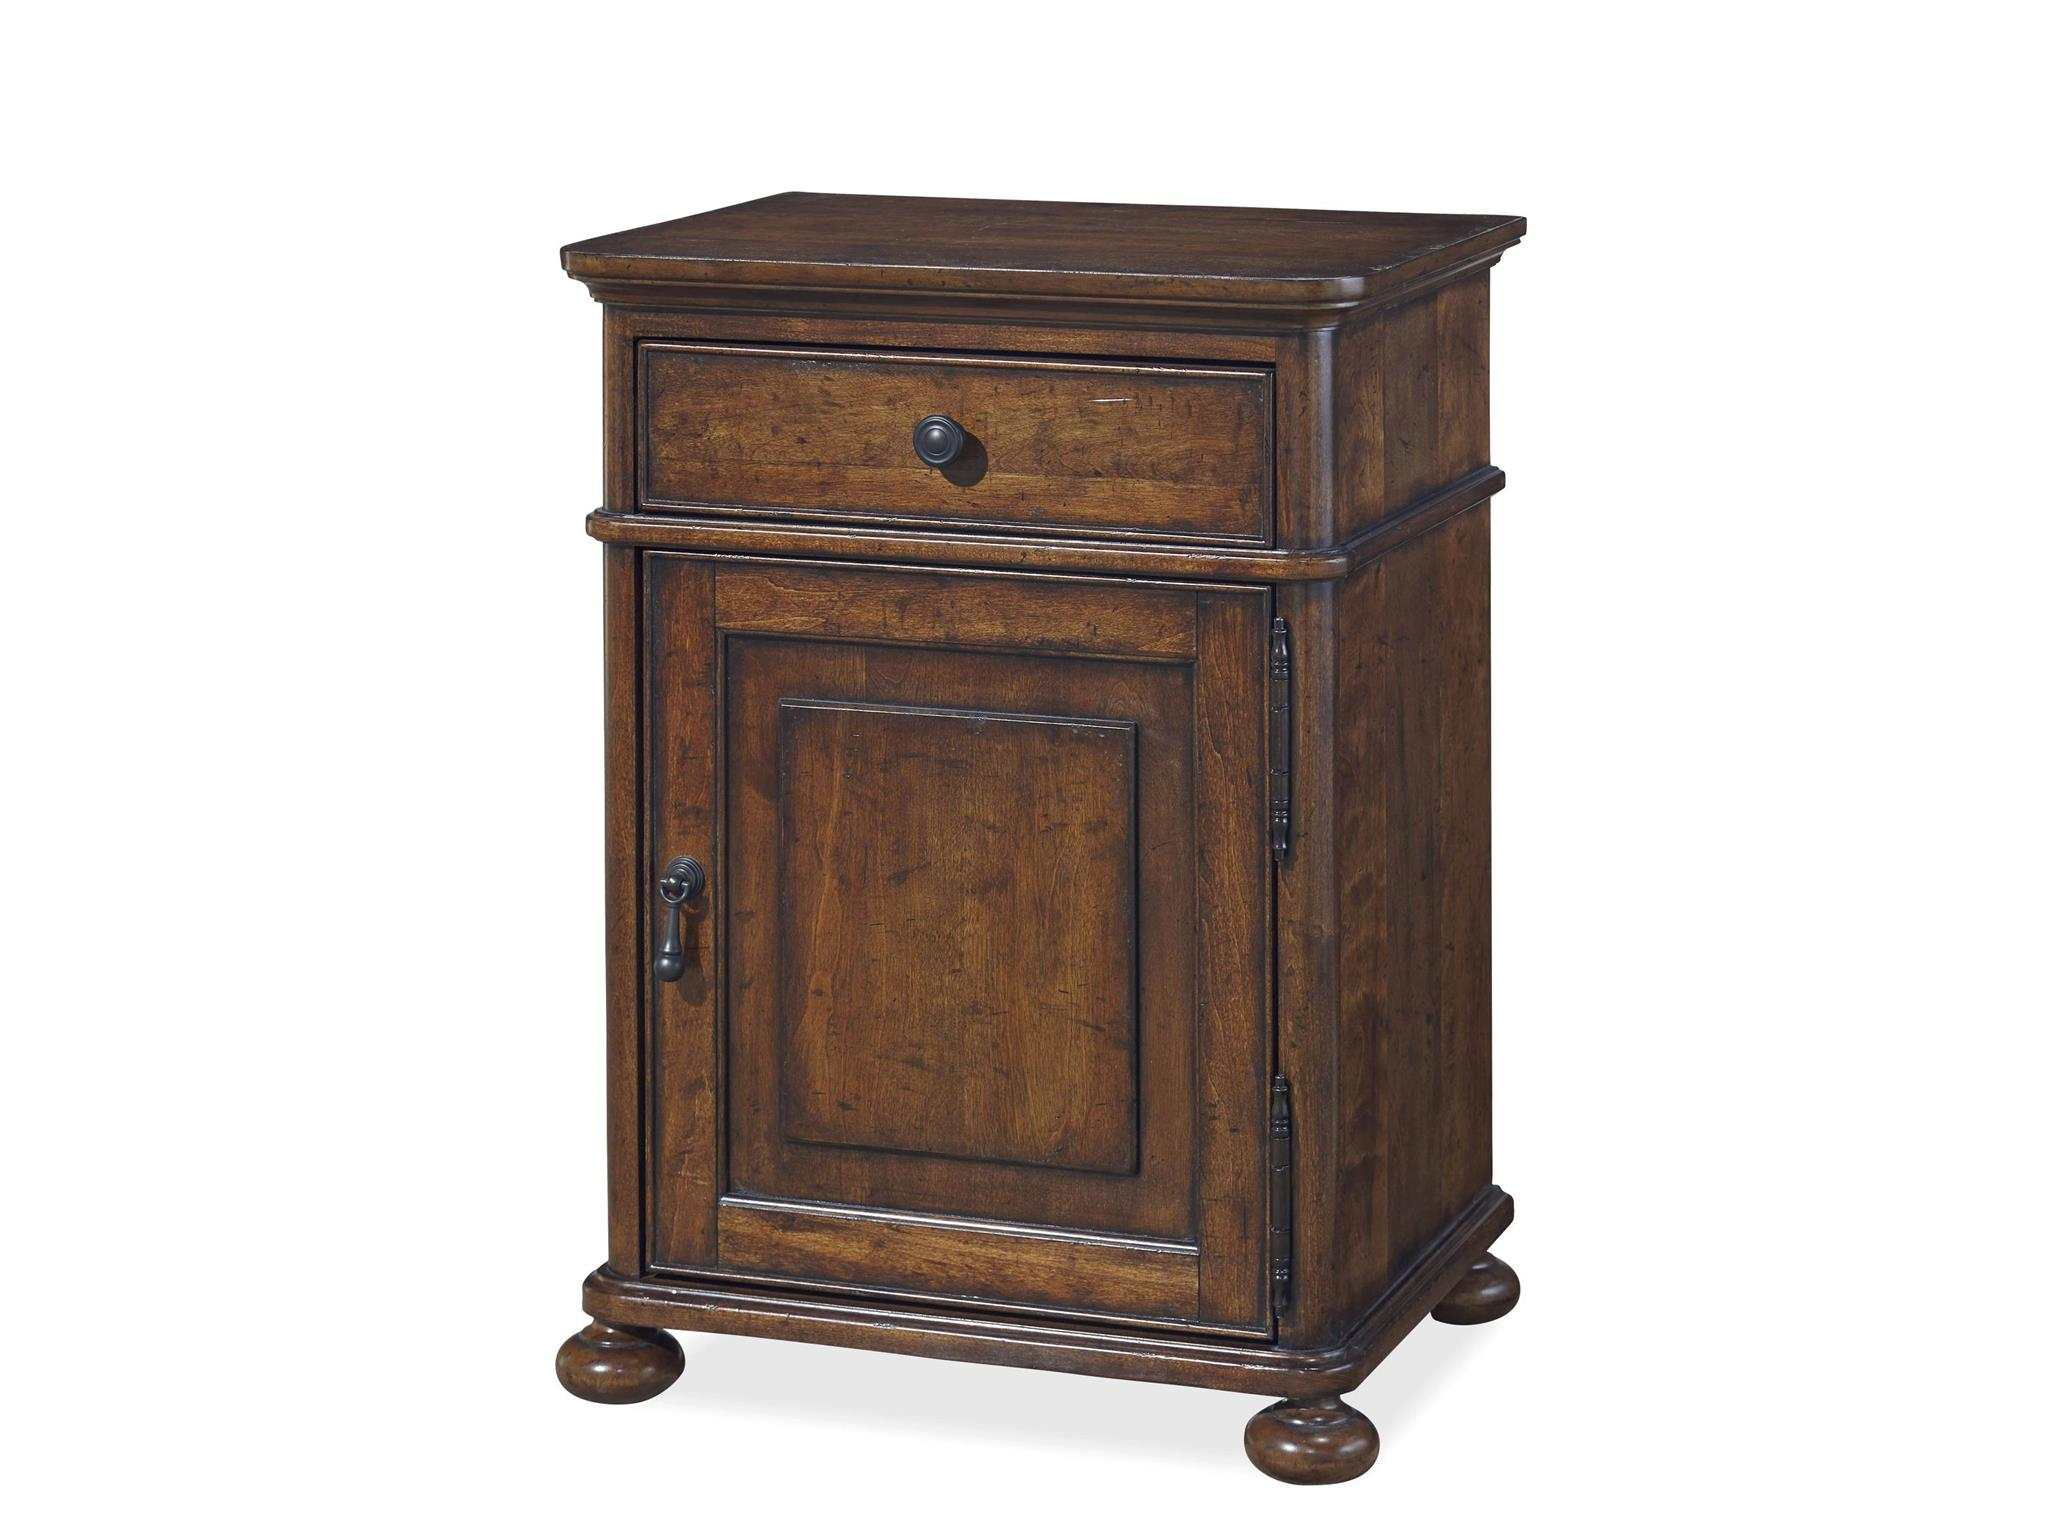 Universal Furniture Dogwood Paula Deen Home Door Nightstand